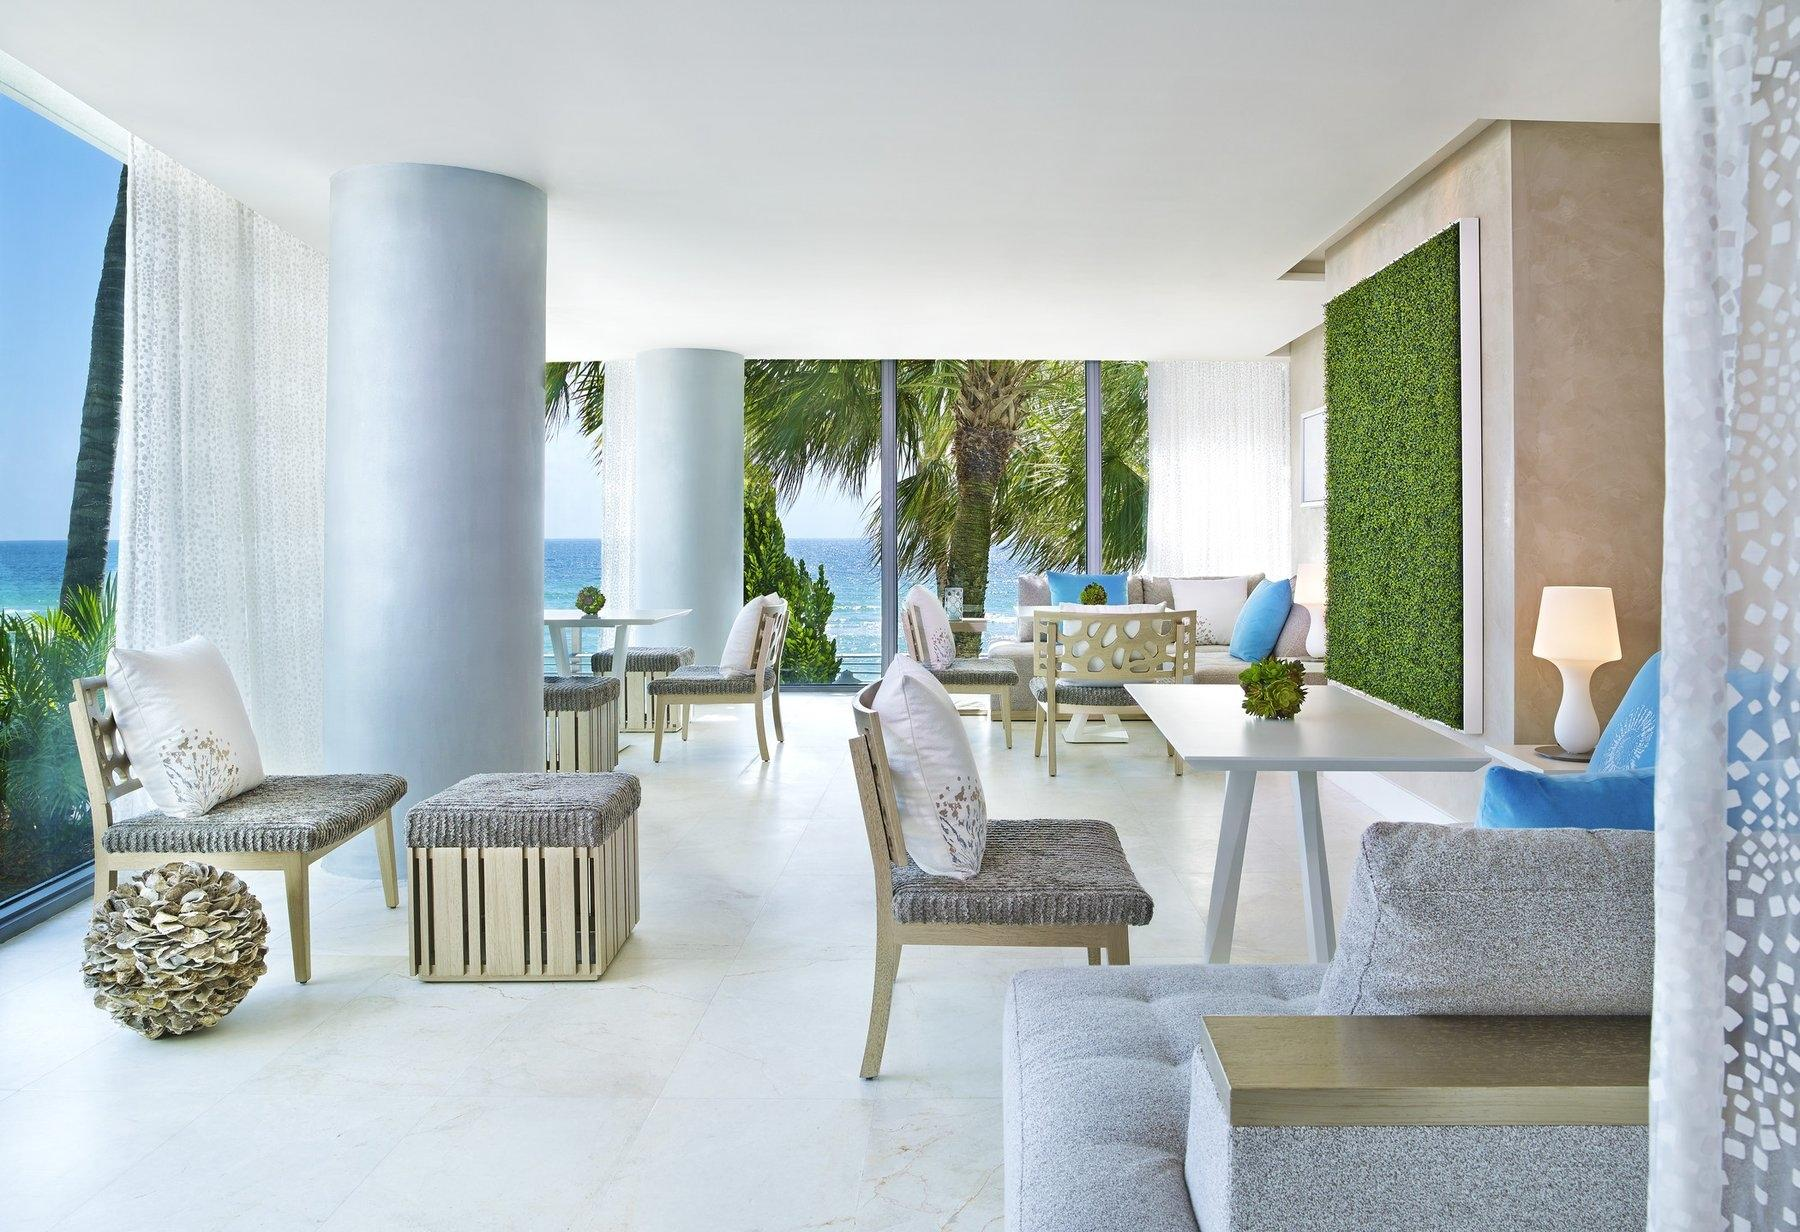 Spa Cafe - The Diplomat Beach Resort, Miami, FL